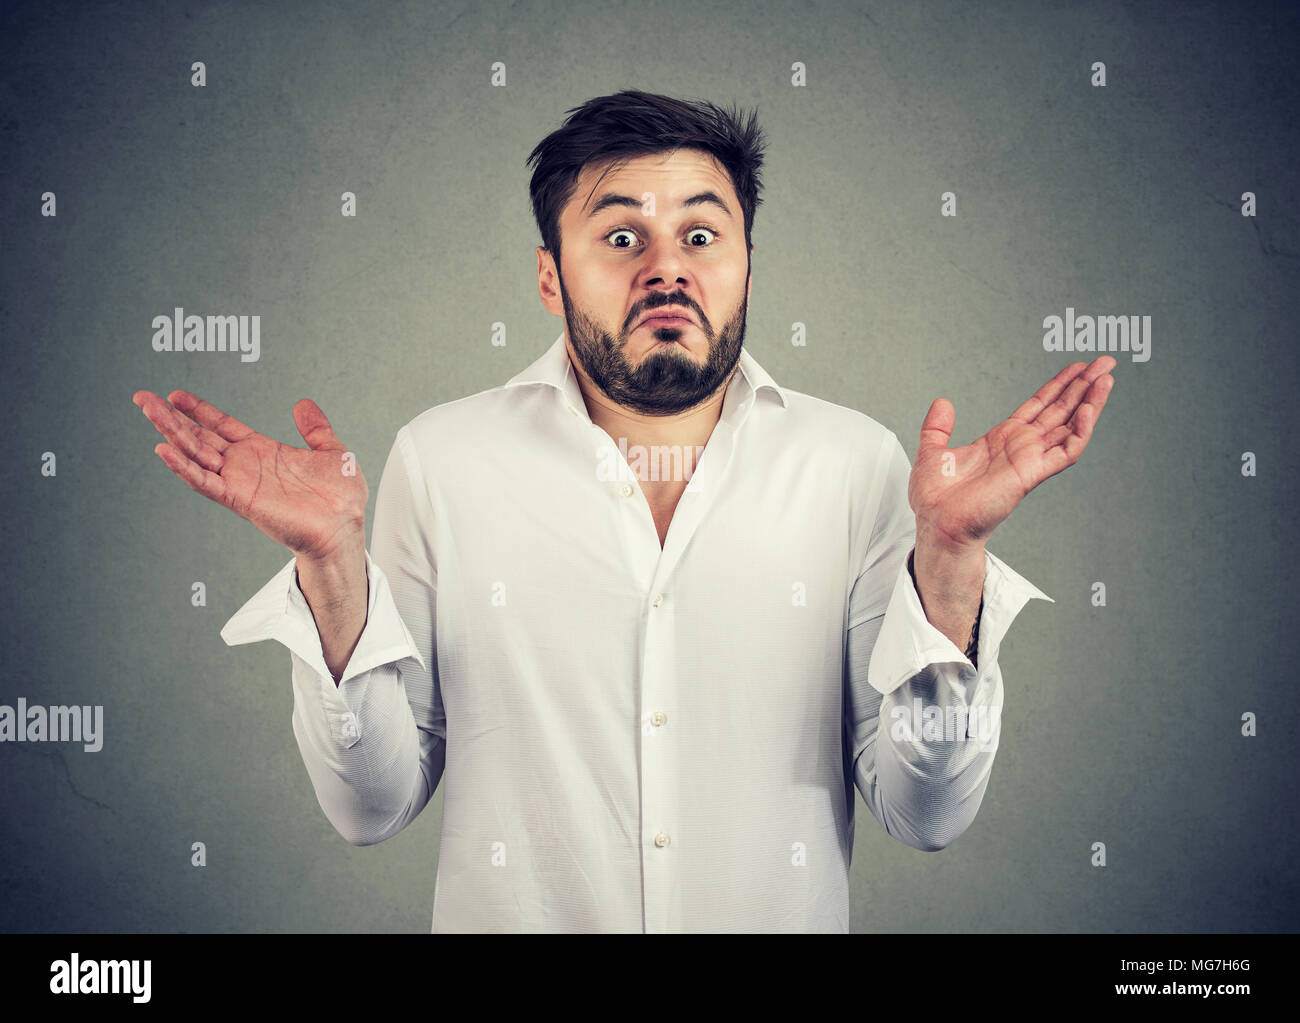 Young bearded man looking super puzzled and shrugging shoulders in question holding hands apart. - Stock Image